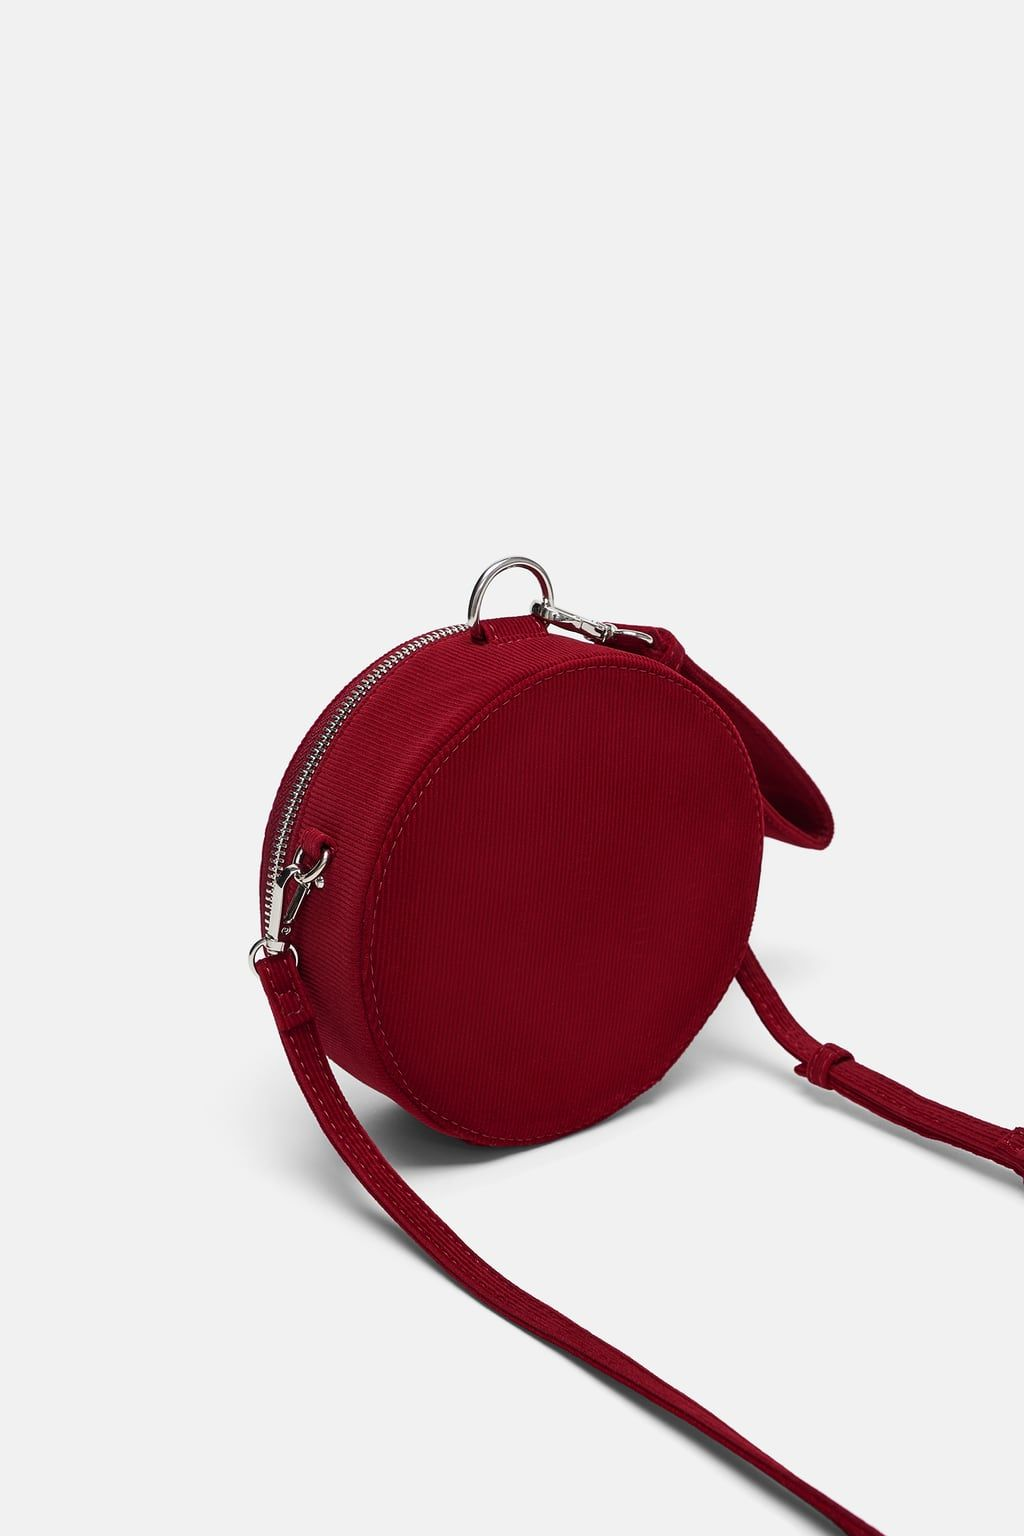 025d334868af Image 6 of ROUND CORDUROY CROSSBODY BAG from Zara | Wish List in ...